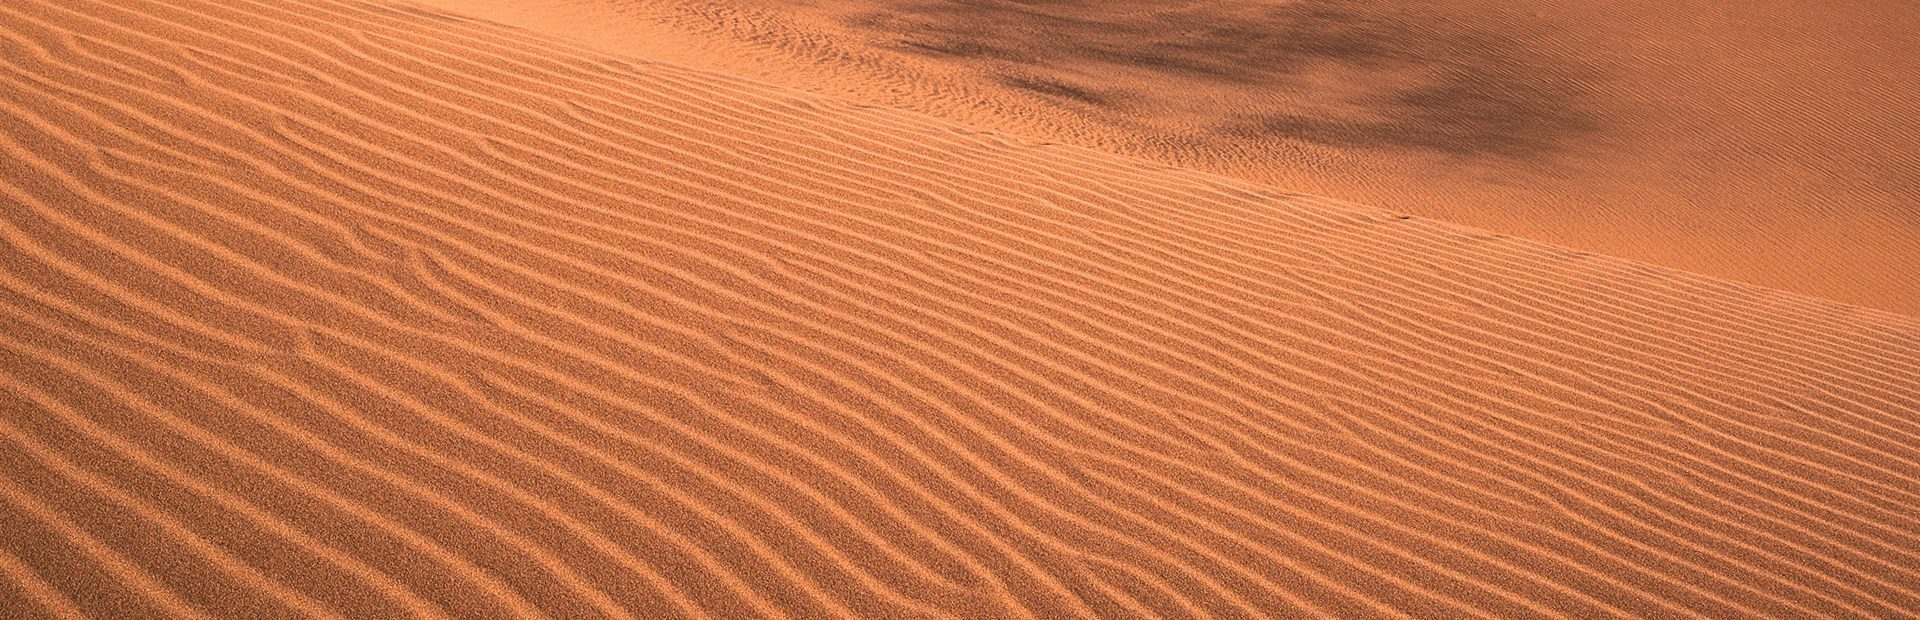 cropped-desert_sand-Amazing_desert_scenery_Desktop_Wallpapers_1920x1080.jpg